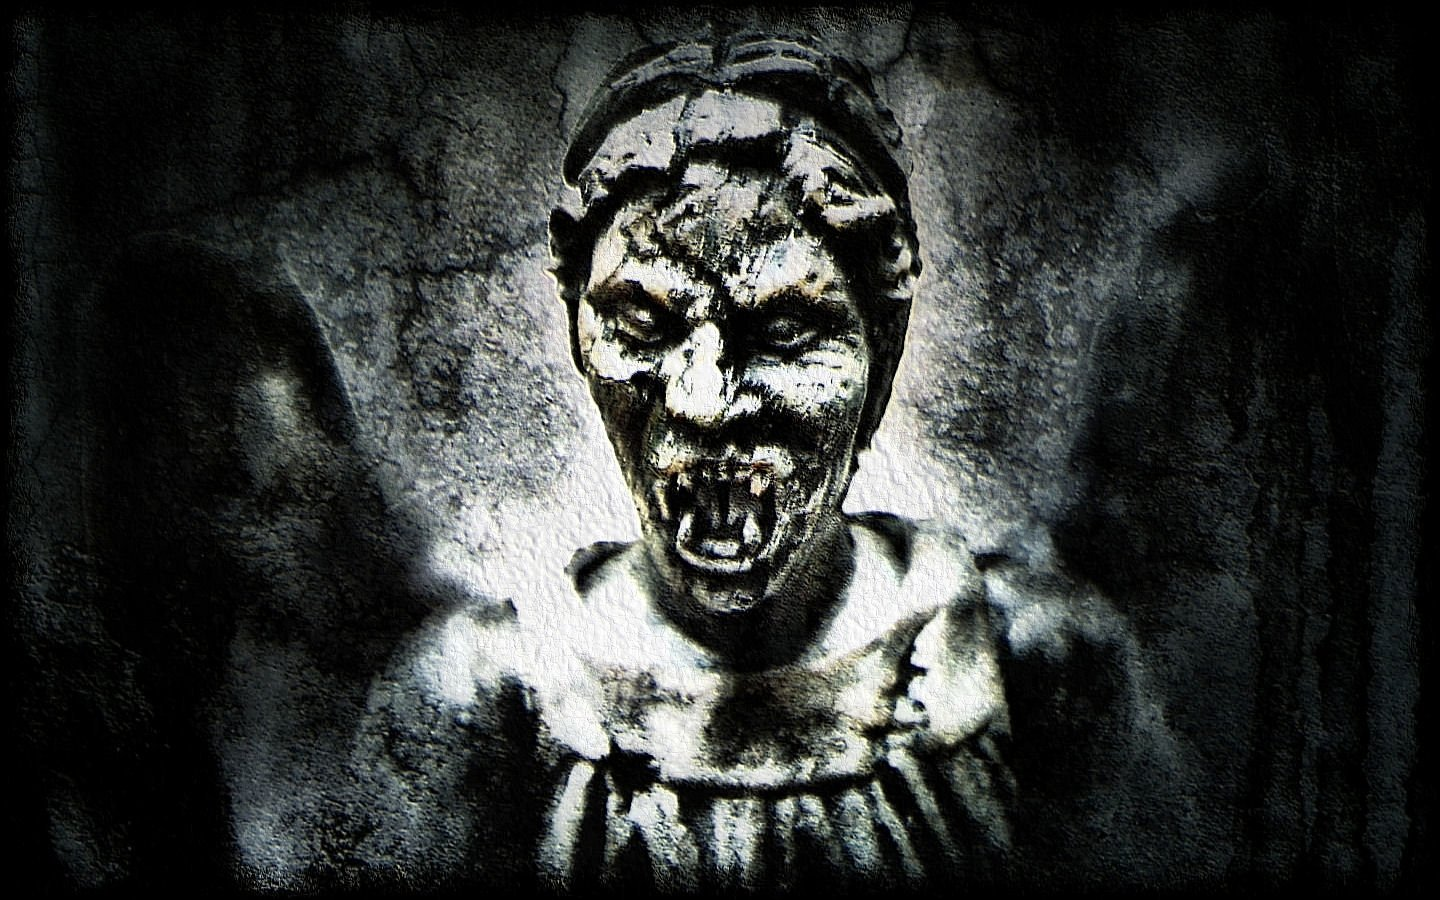 Doctor Who Weeping Angel 1440x900